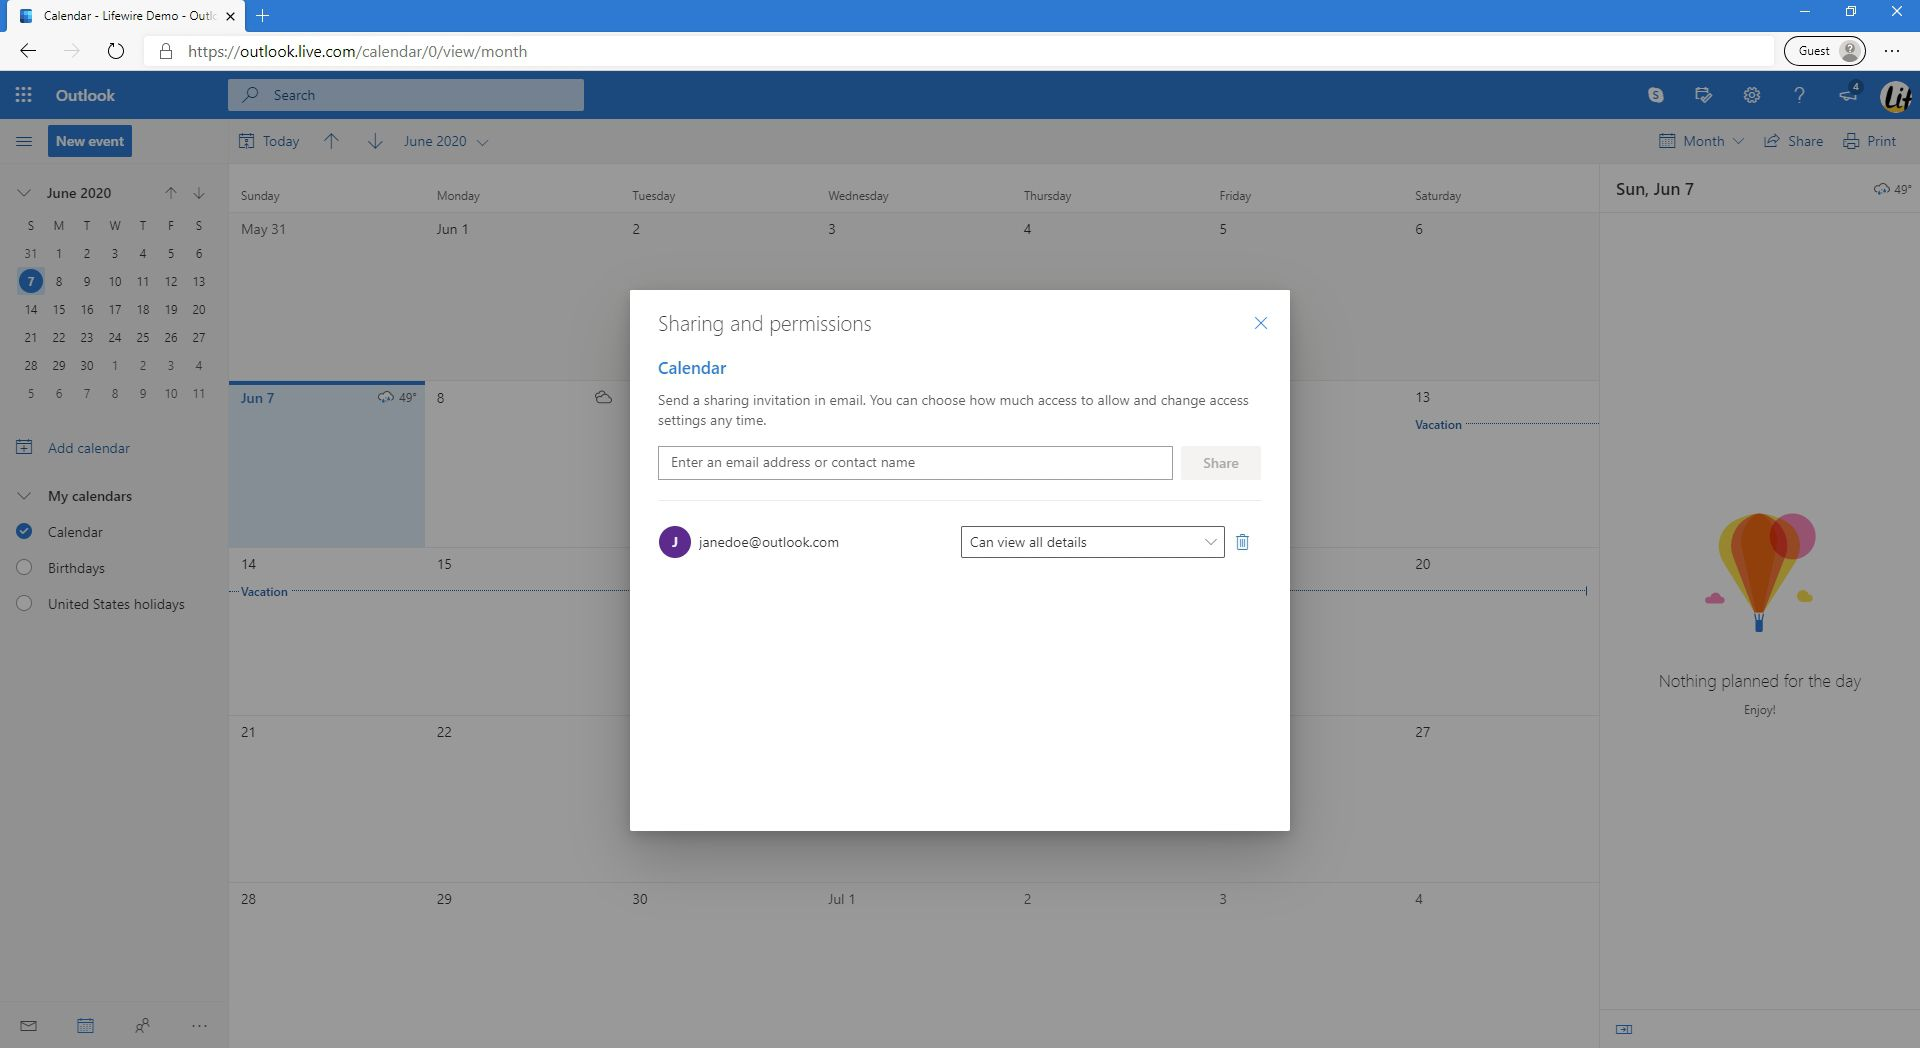 Displaying the email addresses that the calendar in Outlook.com is being shared to.